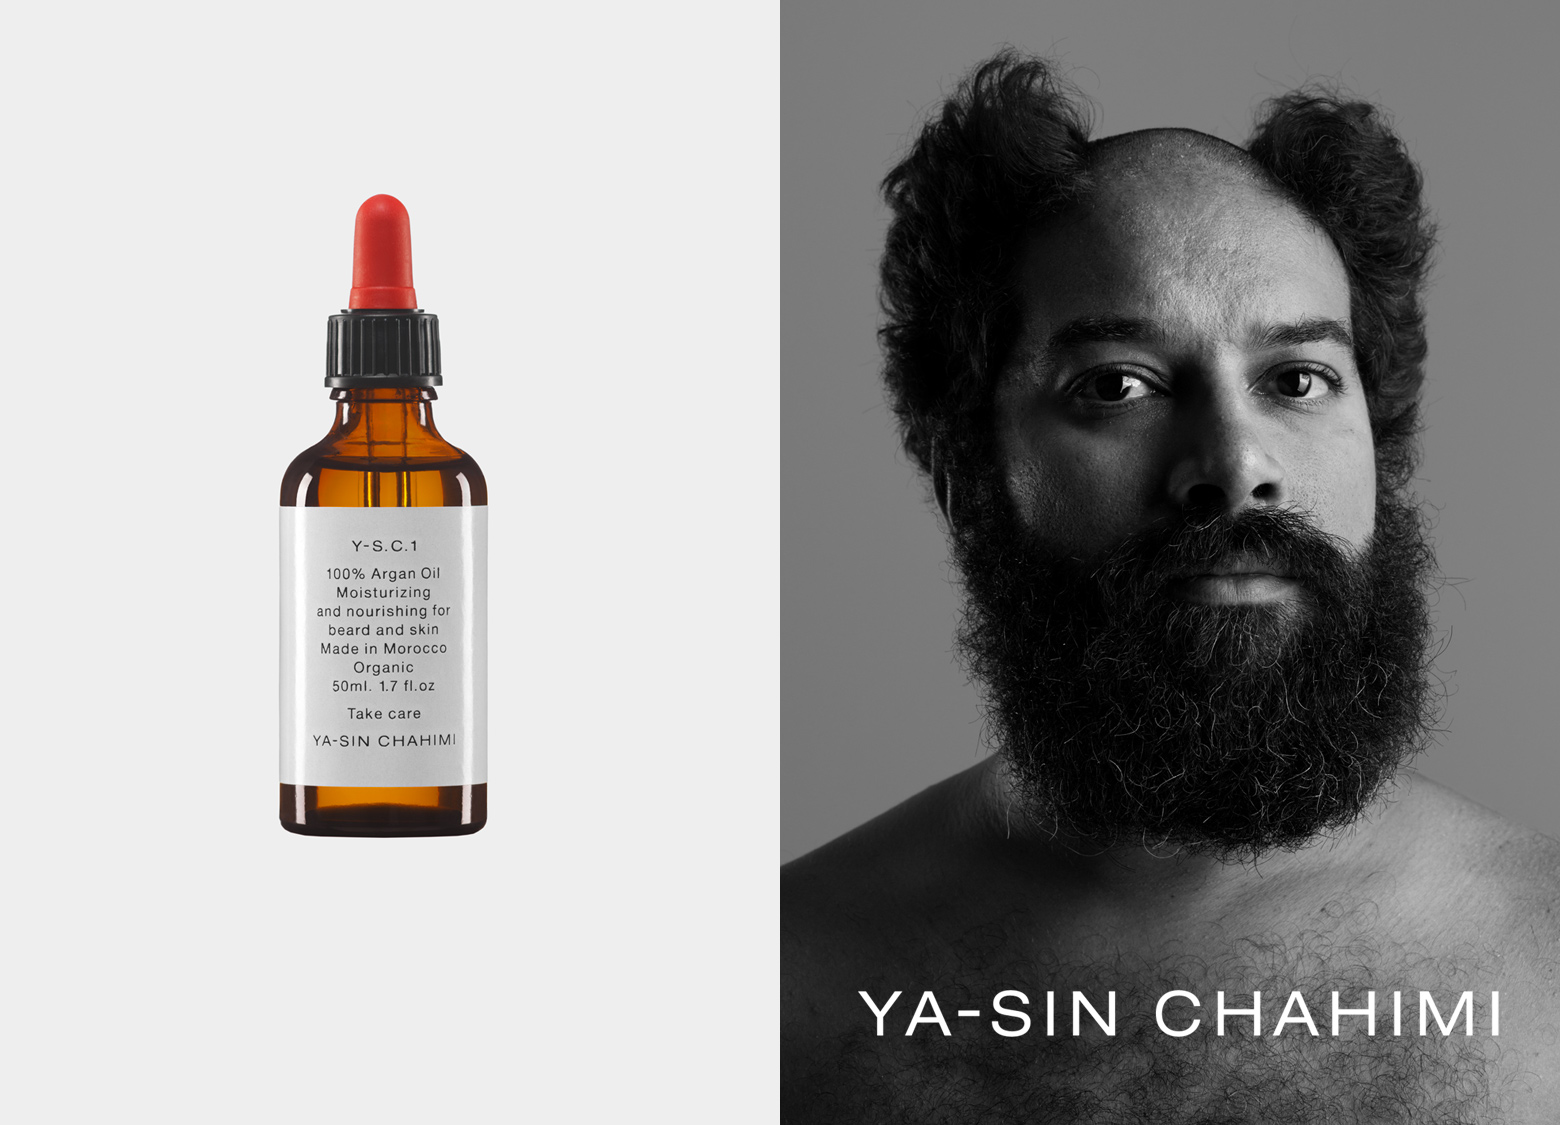 YA-SIN CHAHIMI Branding and packaging design